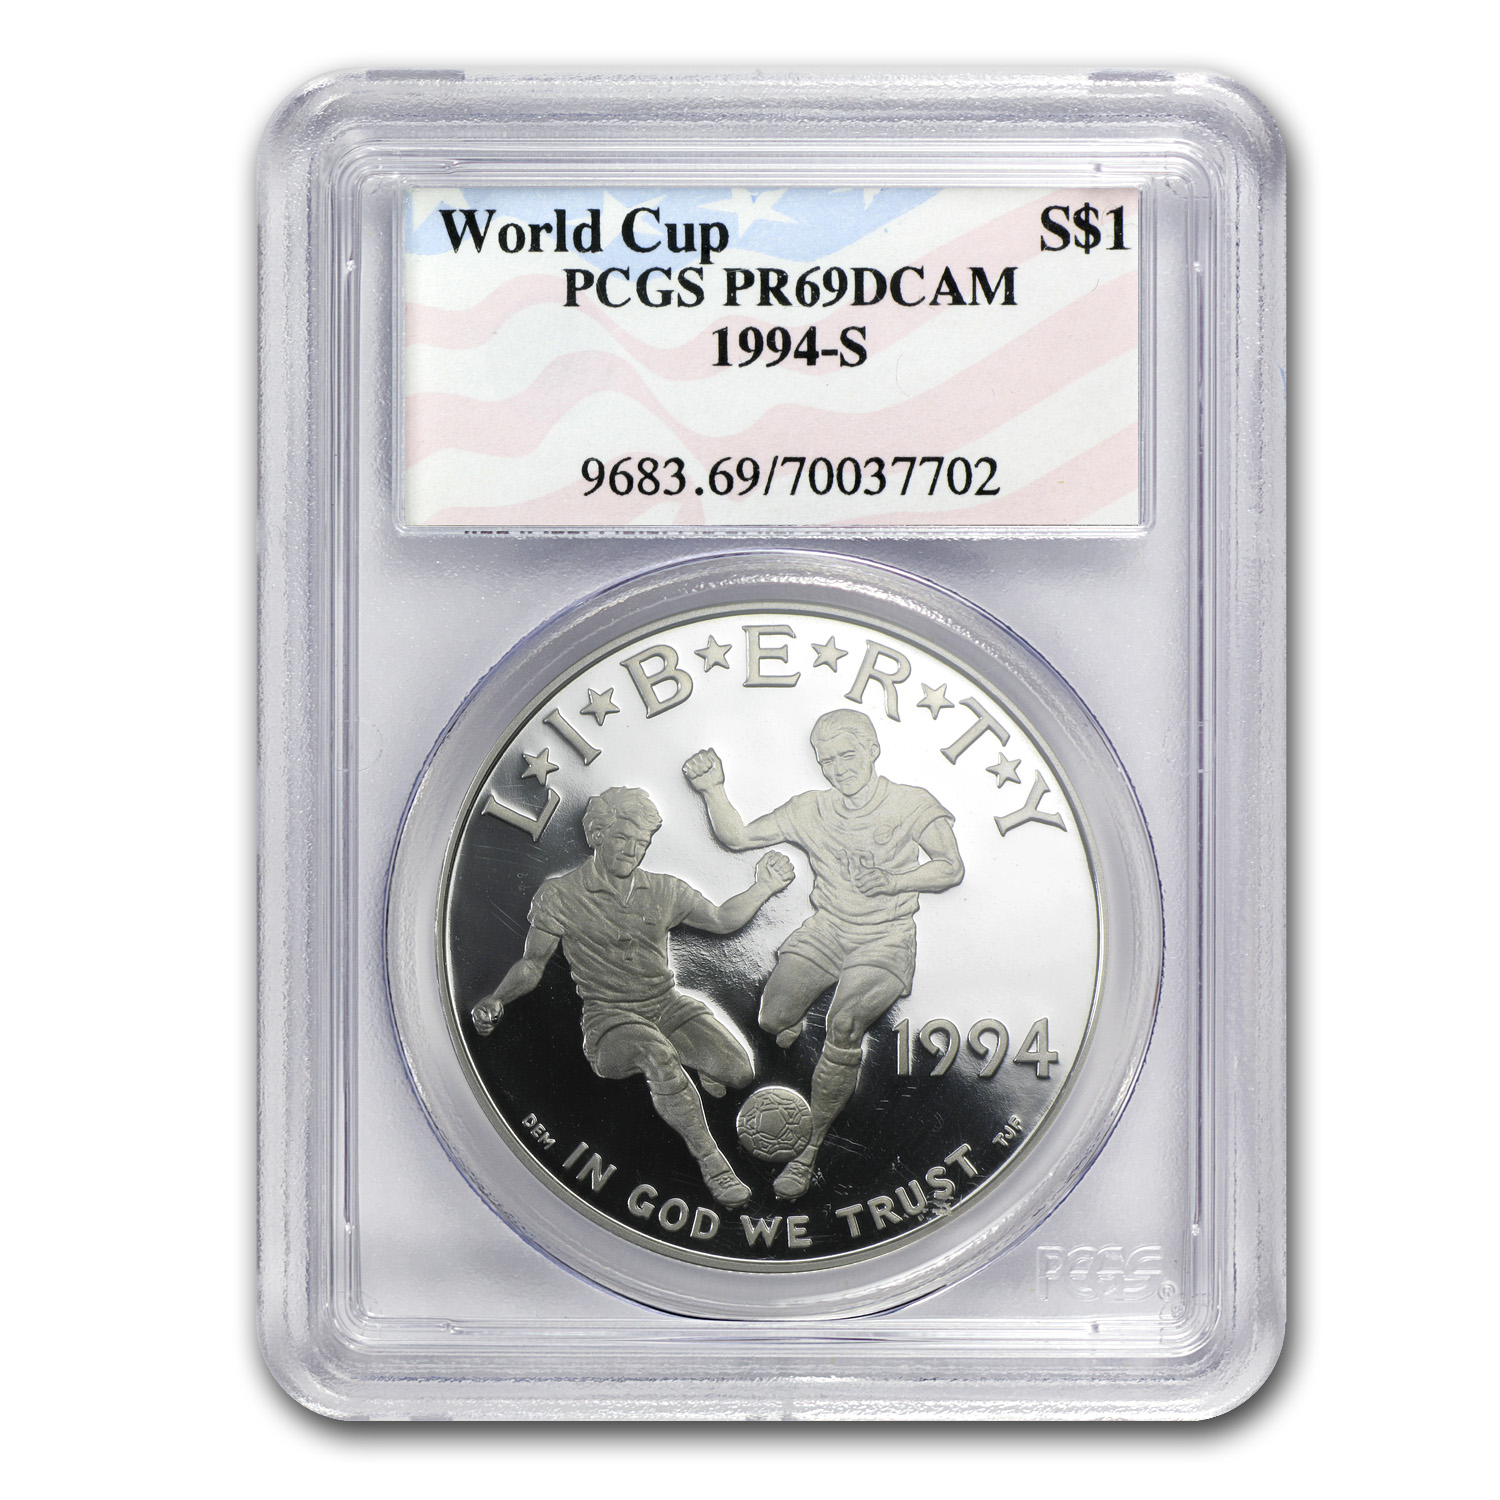 1994-S World Cup $1 Silver Commemorative - PR-69 DCAM PCGS